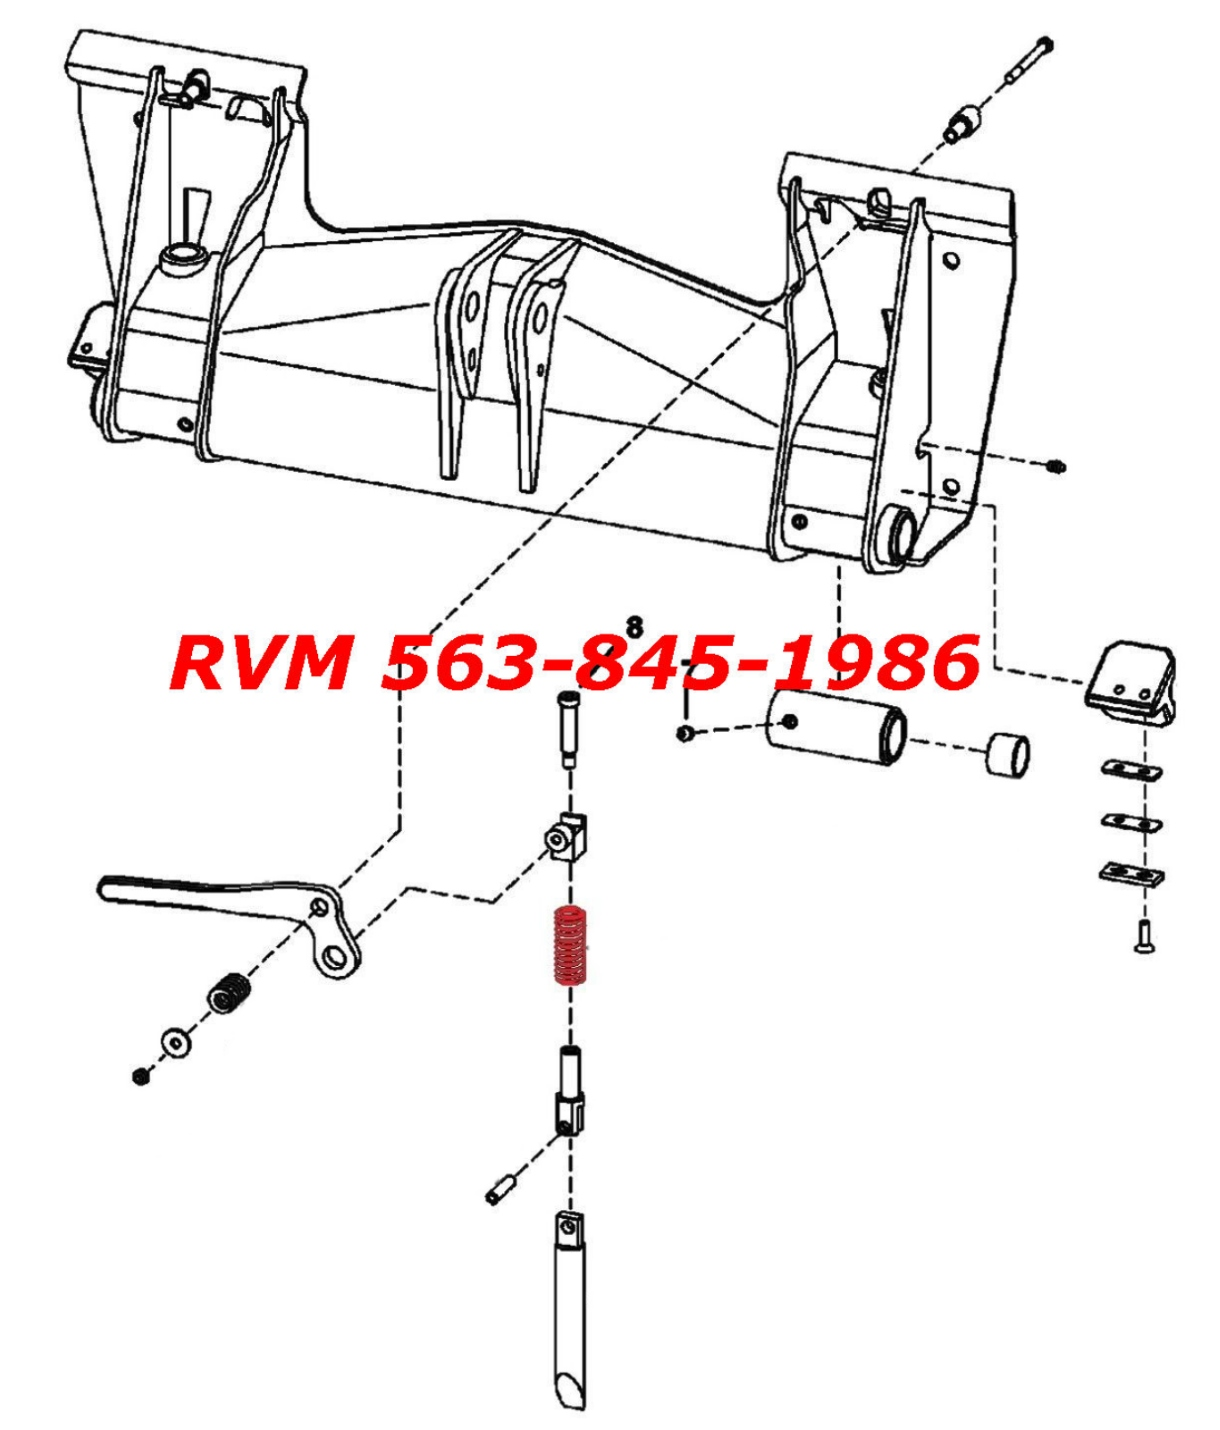 763 bobcat hydraulic schematic compression spring  6578253  for quick attach handle   wedge  for quick attach handle   wedge